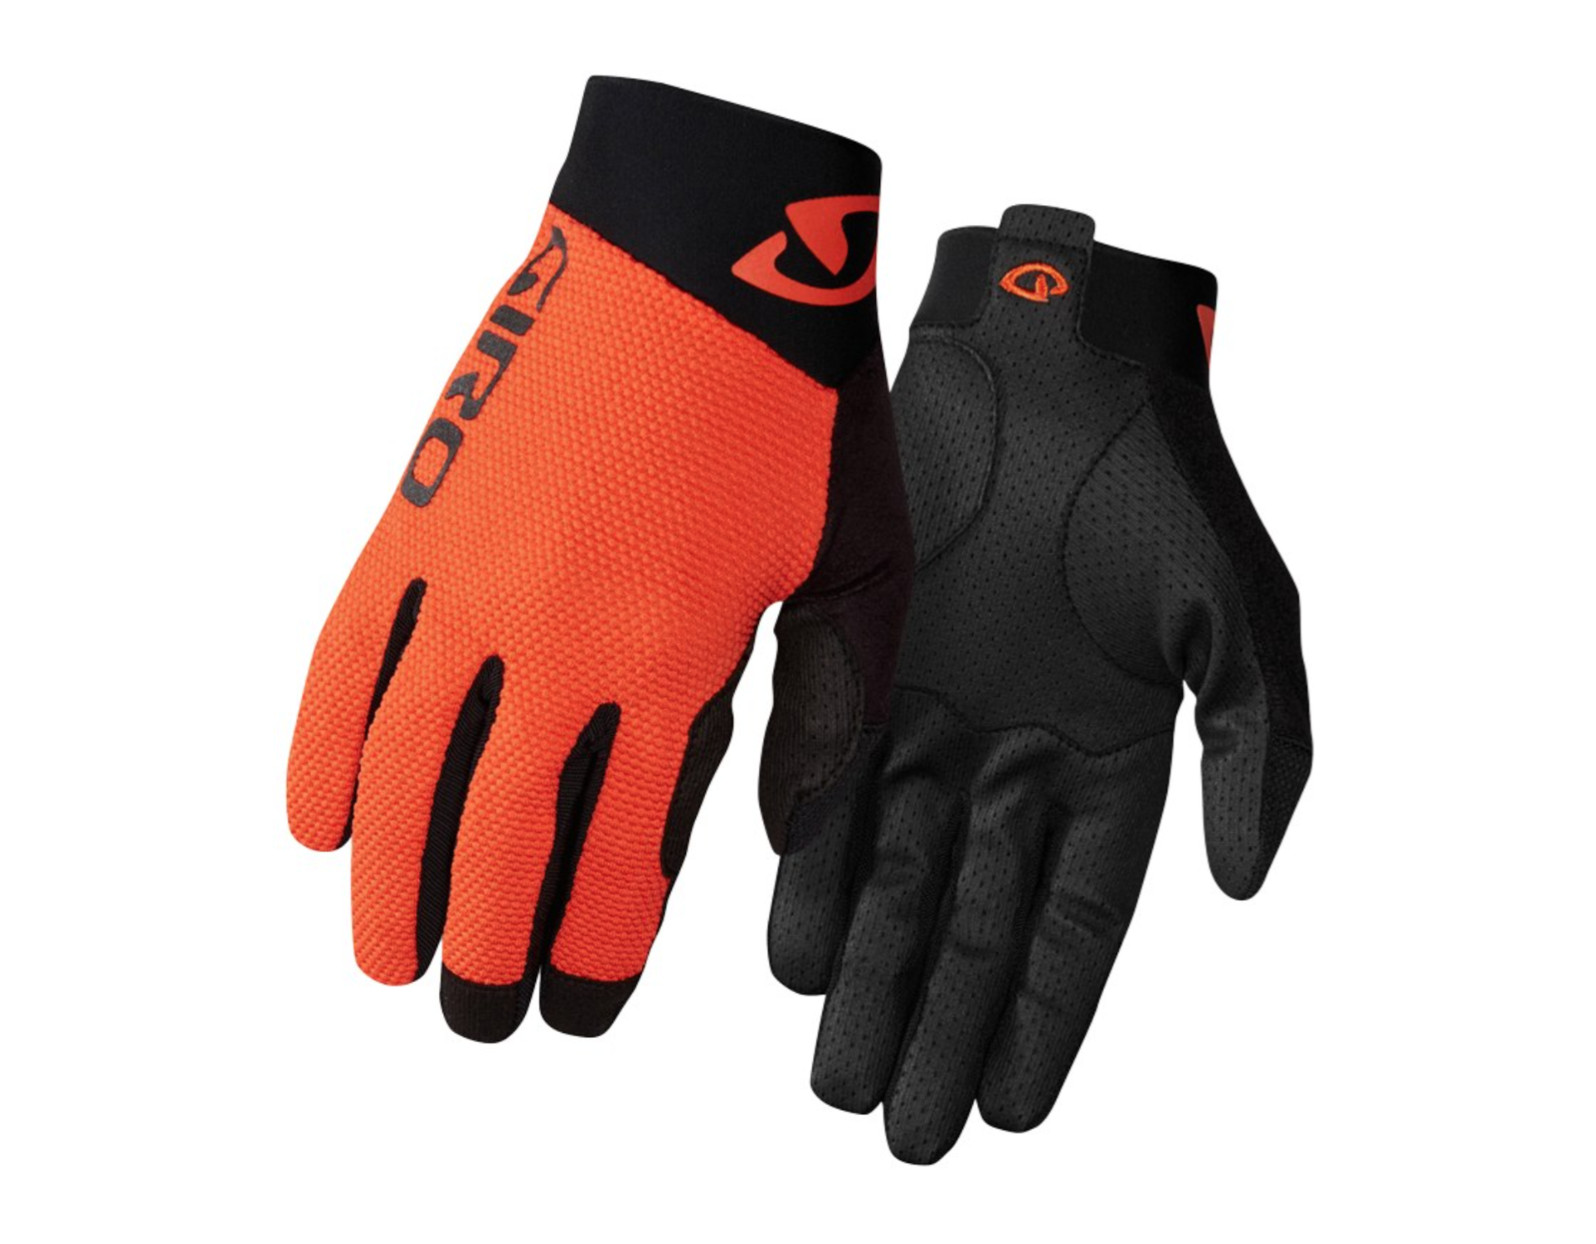 Giro Rivet II Gloves Giro Rivet II Gloves - Flame:Black